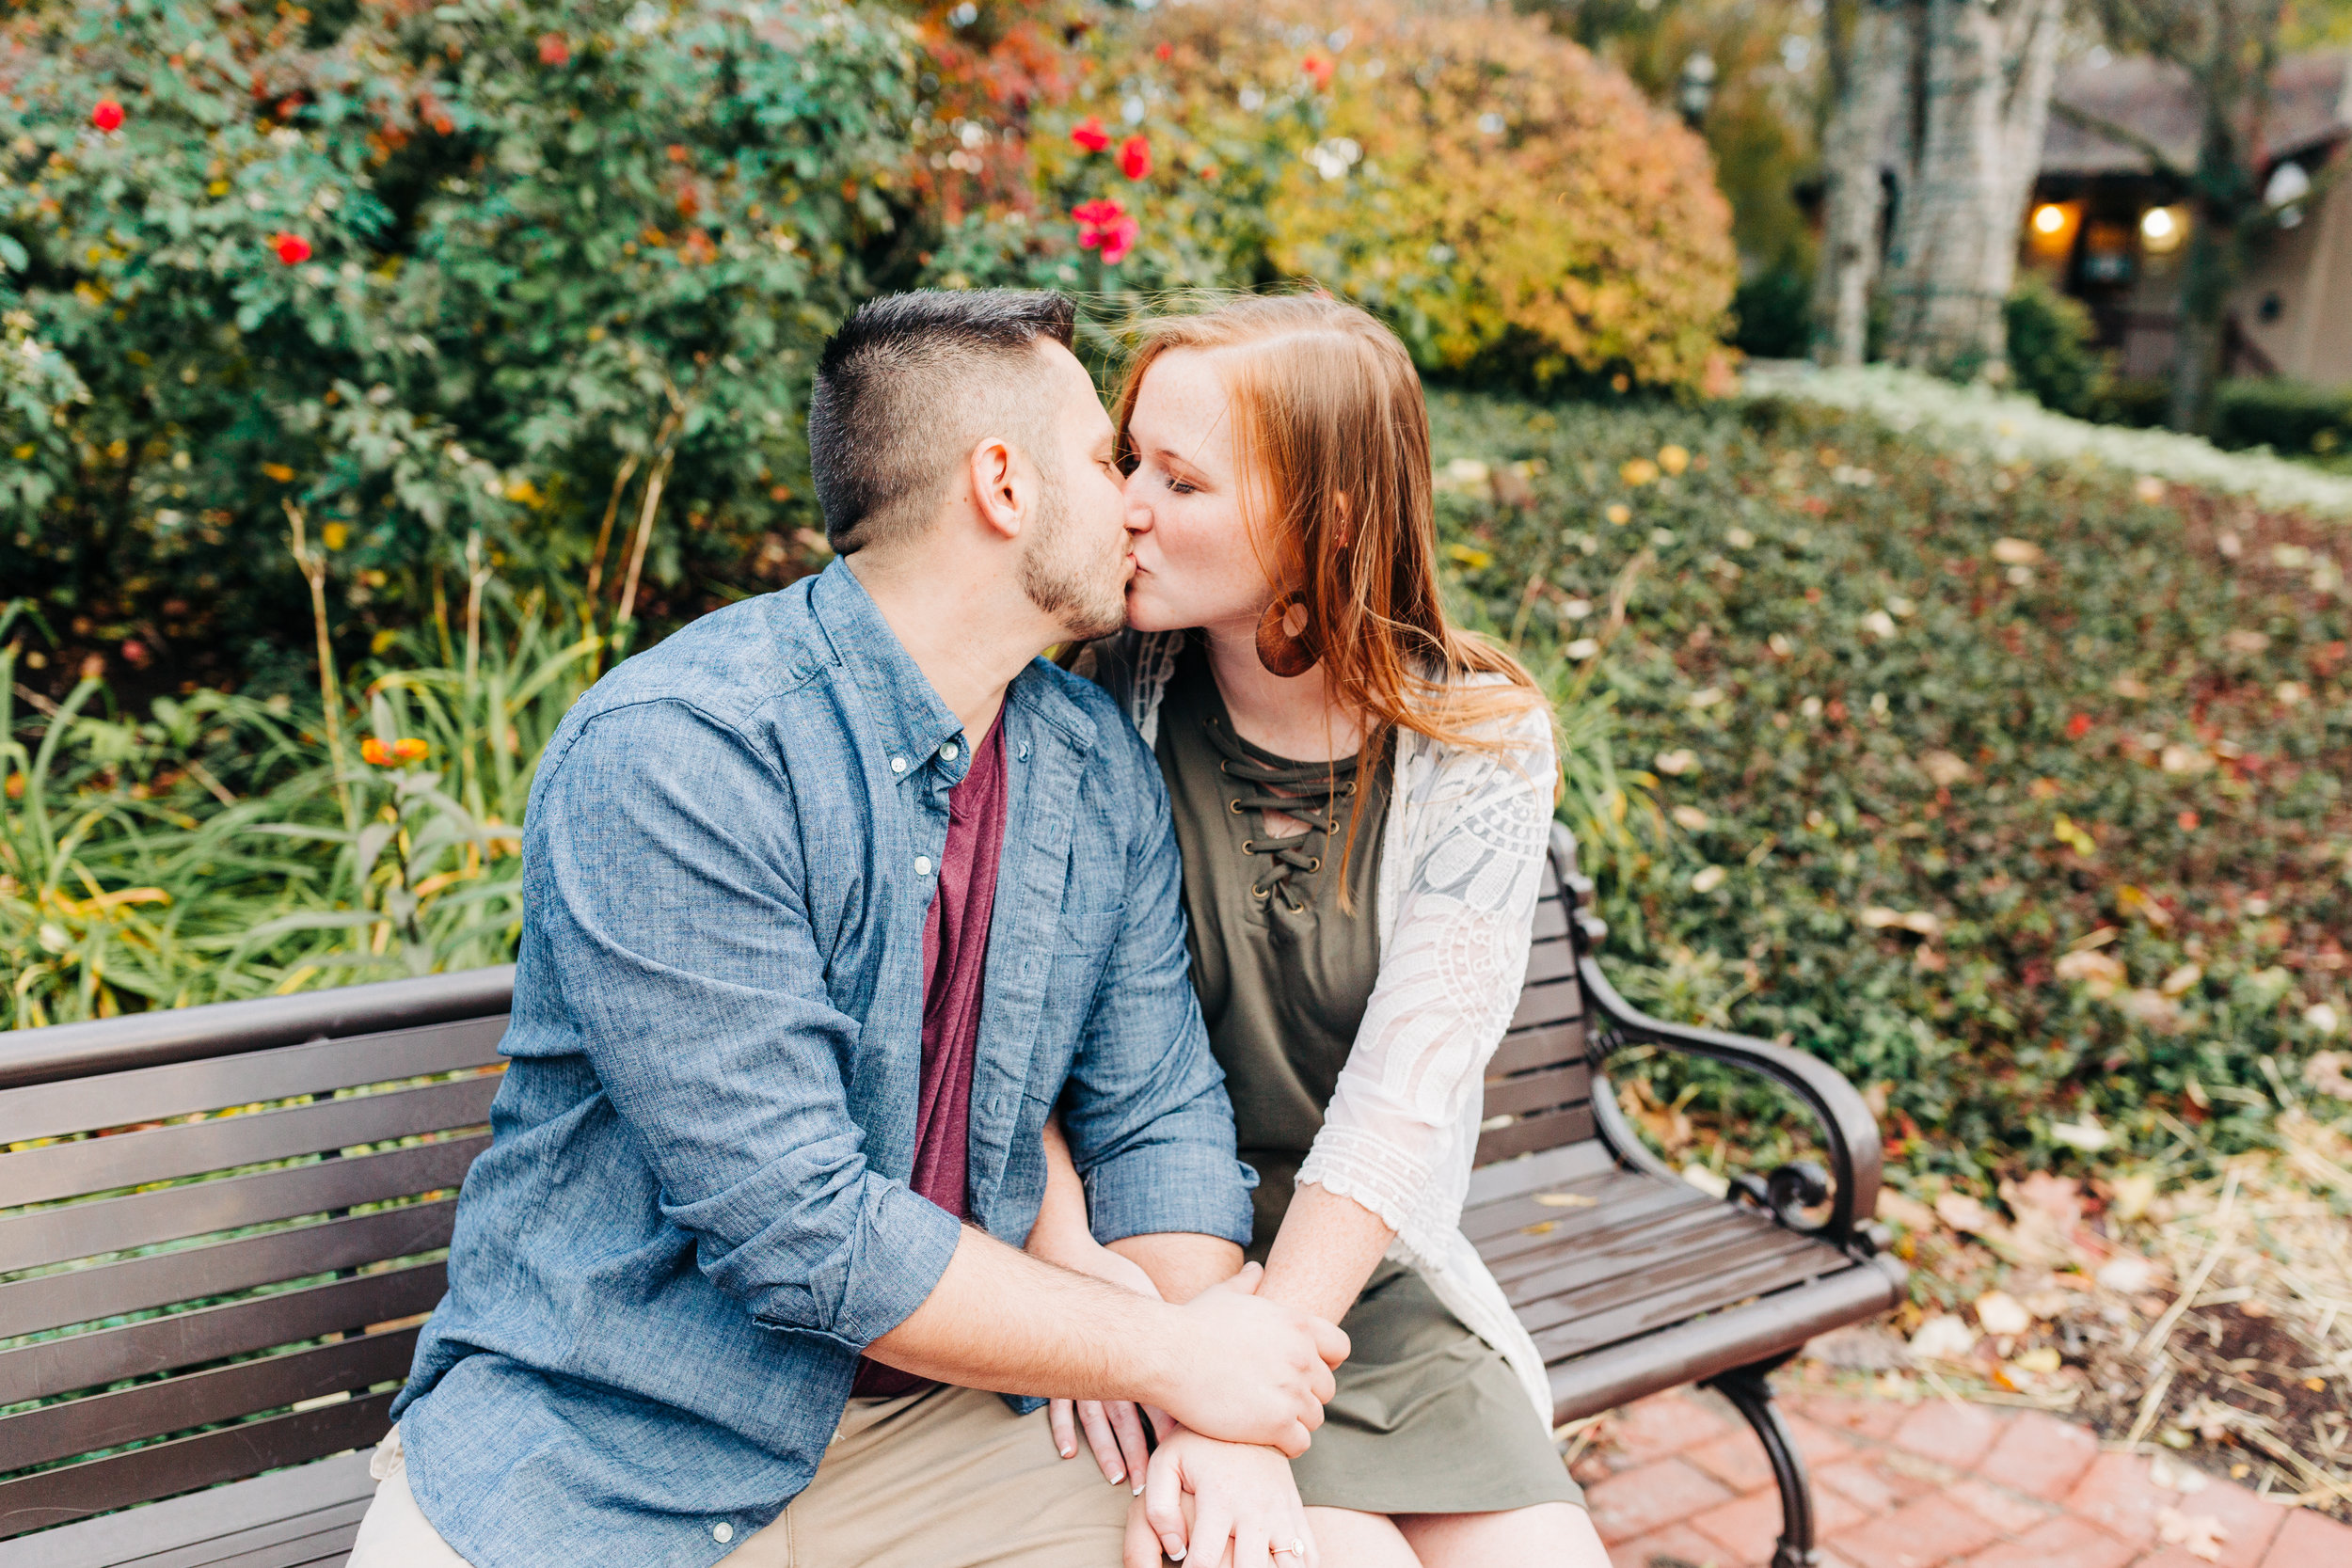 Dorothy_Louise_Photography_Sam_Nick_Main_Street_Saint_Charles_Engagement-4456.jpg